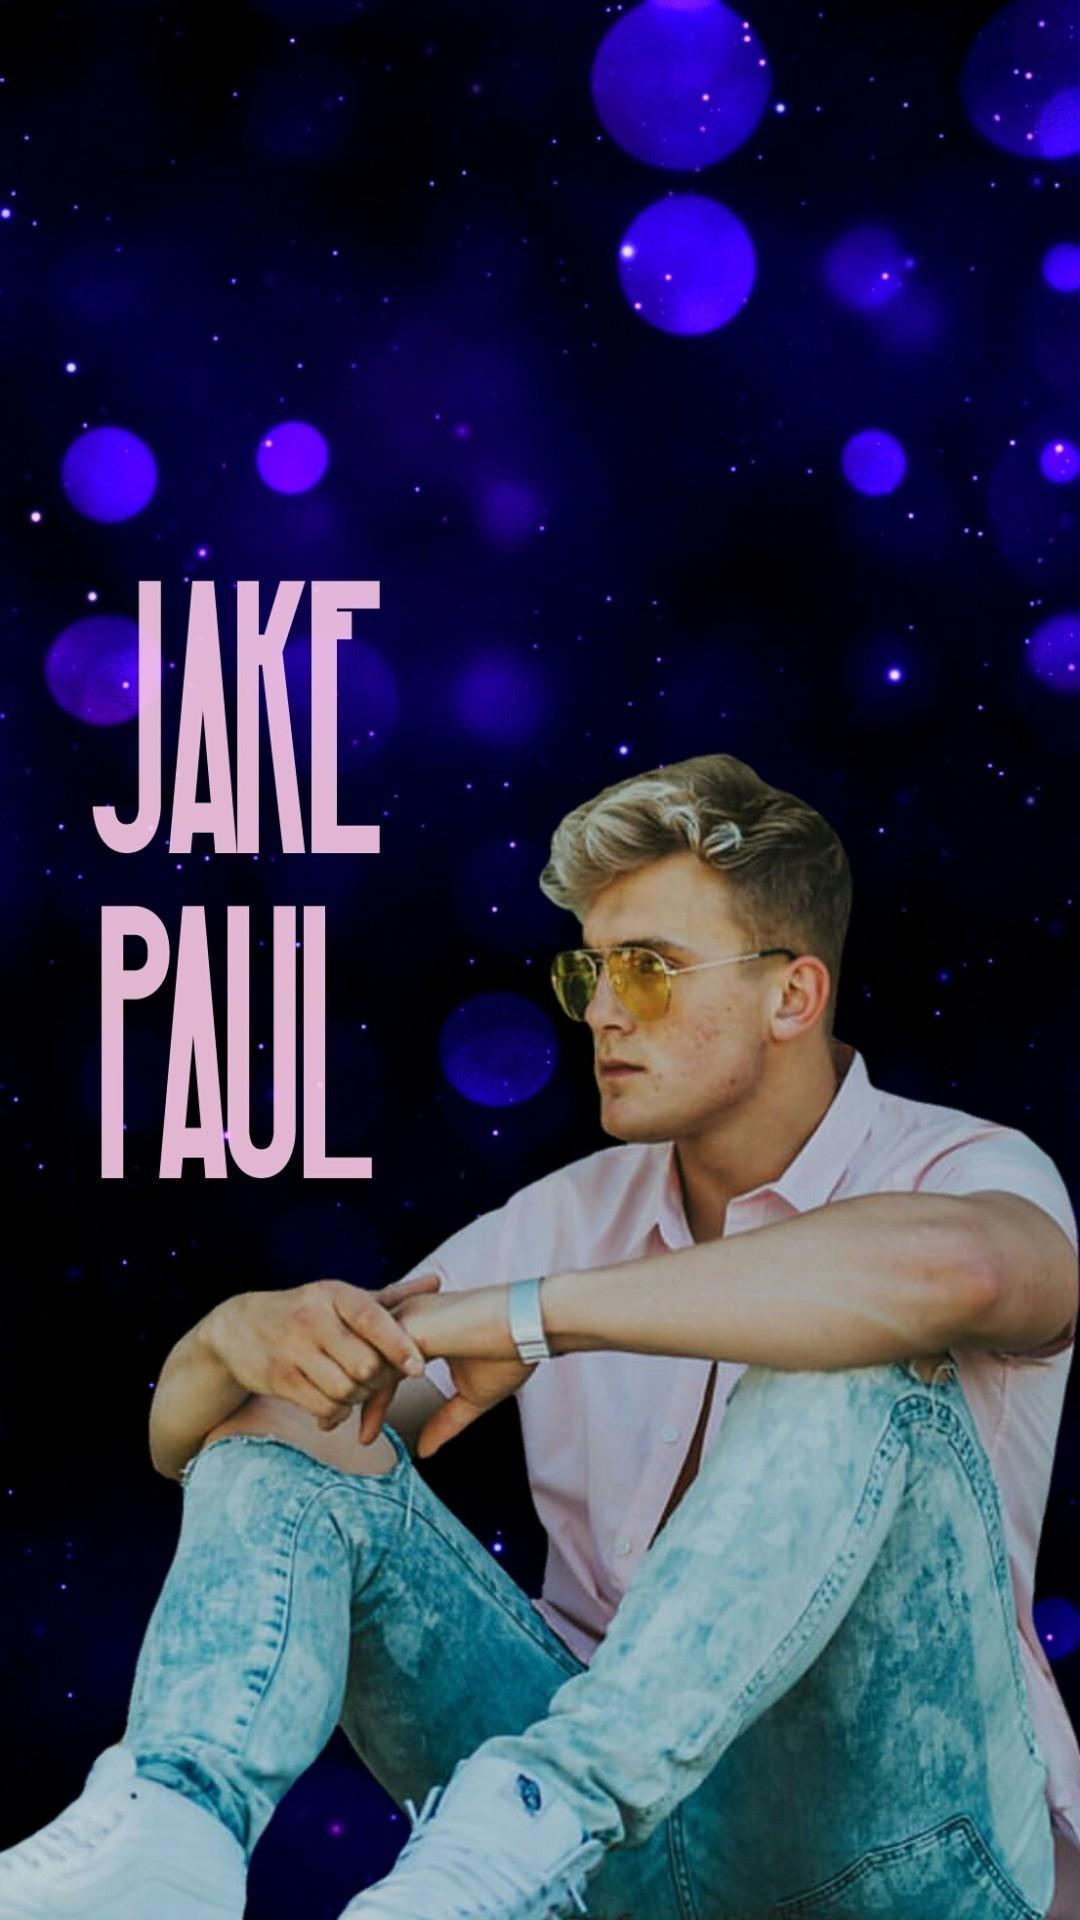 Jake Paul Wallpapers ·①